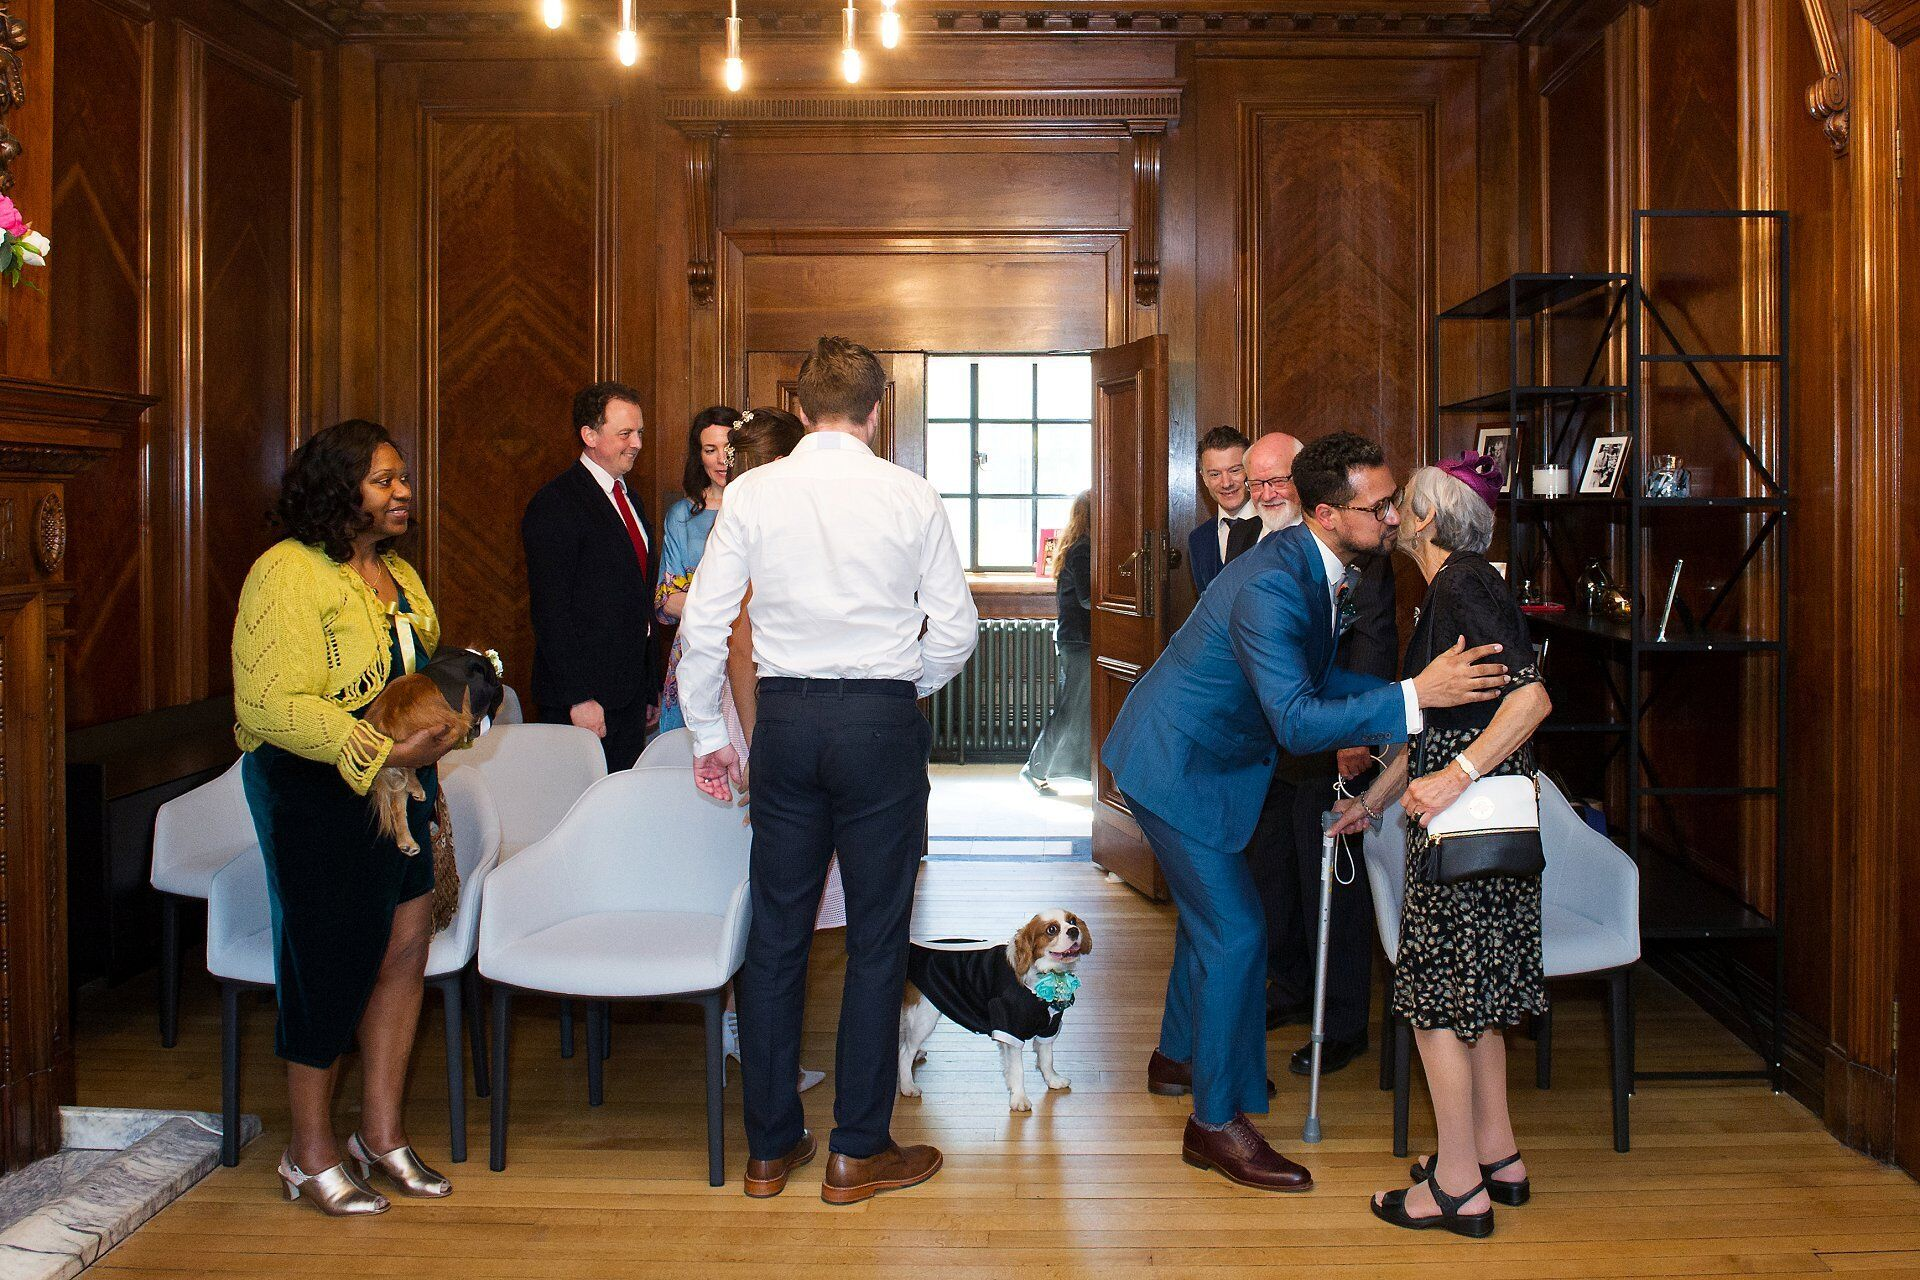 marylebone room wedding photography with dogs as ring bearers here the groom greets his guests as the dogs look on